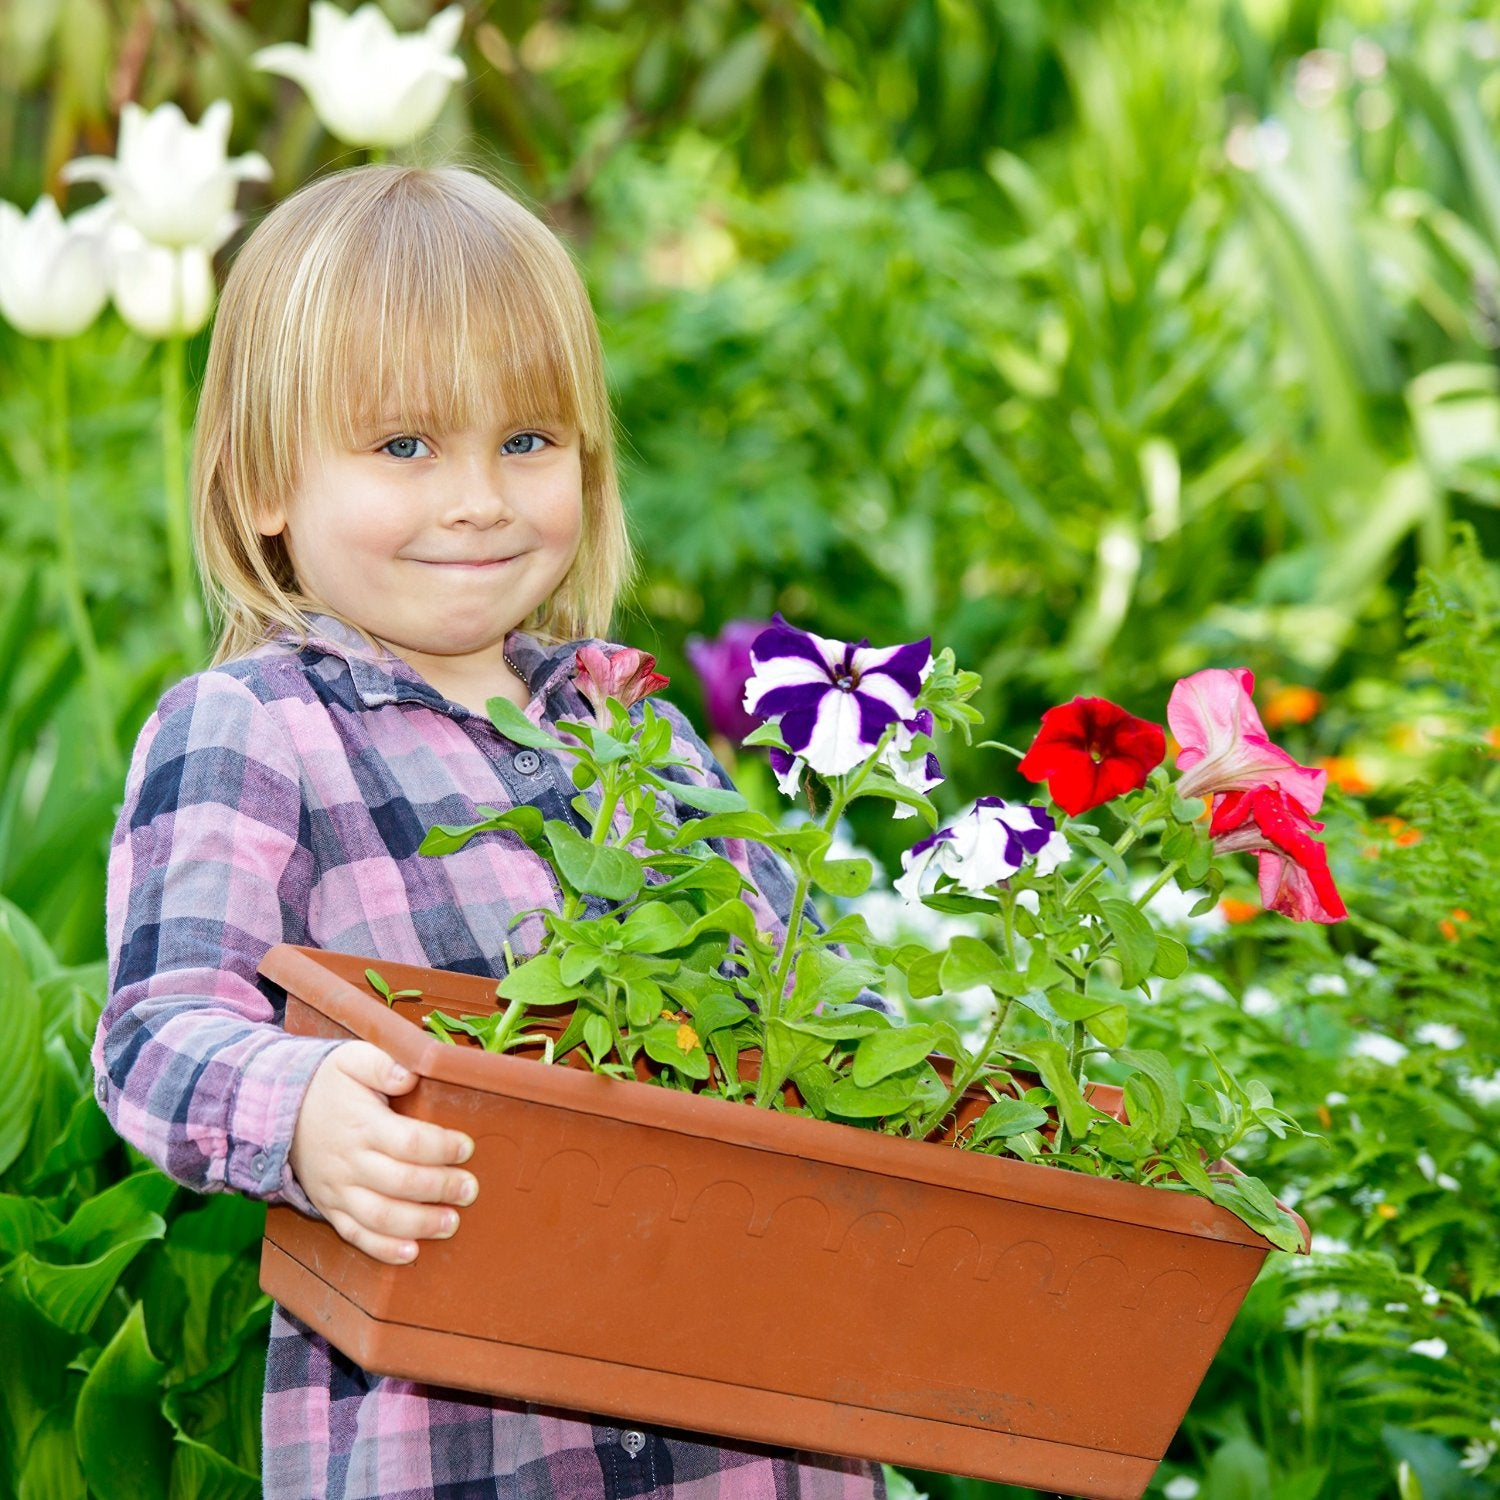 Growing vegetables - planting in containers